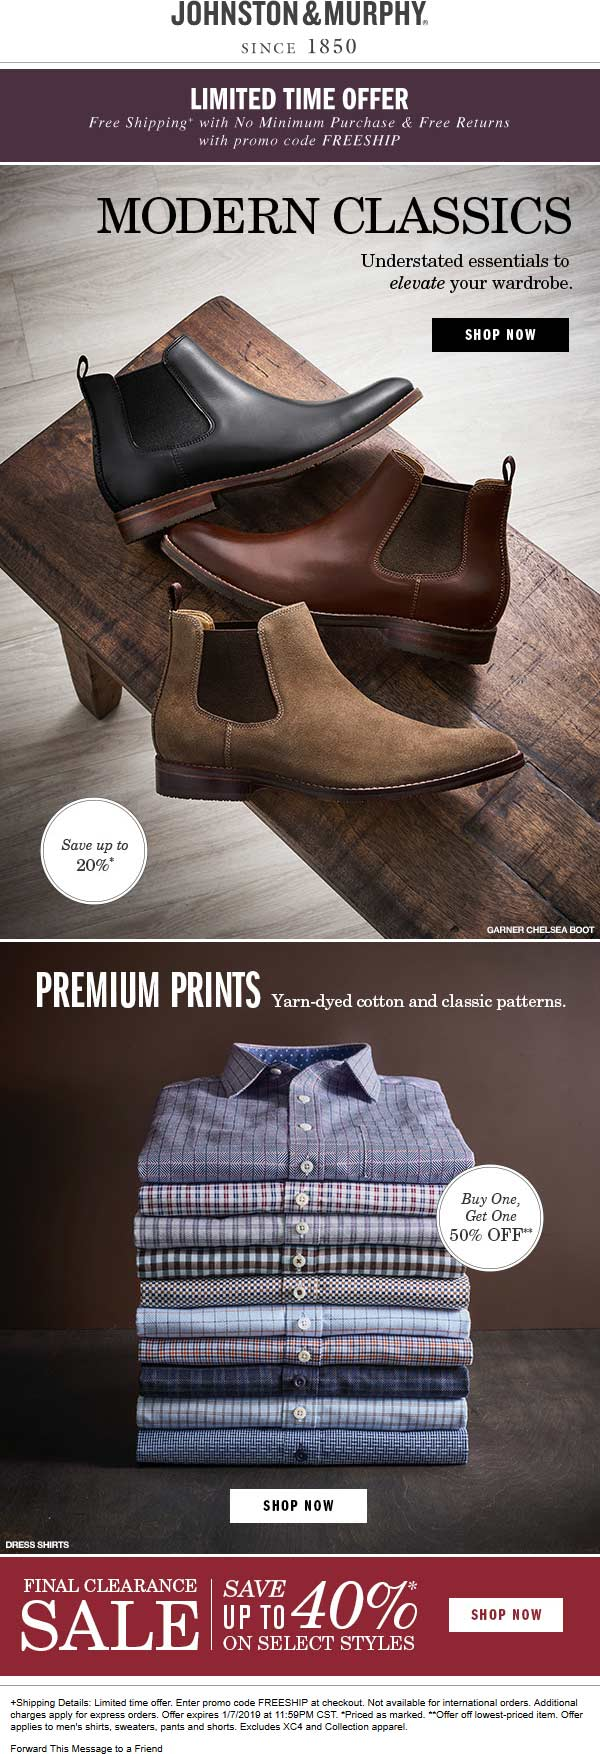 Johnston & Murphy Coupon July 2019 Second print shirt 50% off at Johnston & Murphy, or online with free shipping via promo code FREESHIP